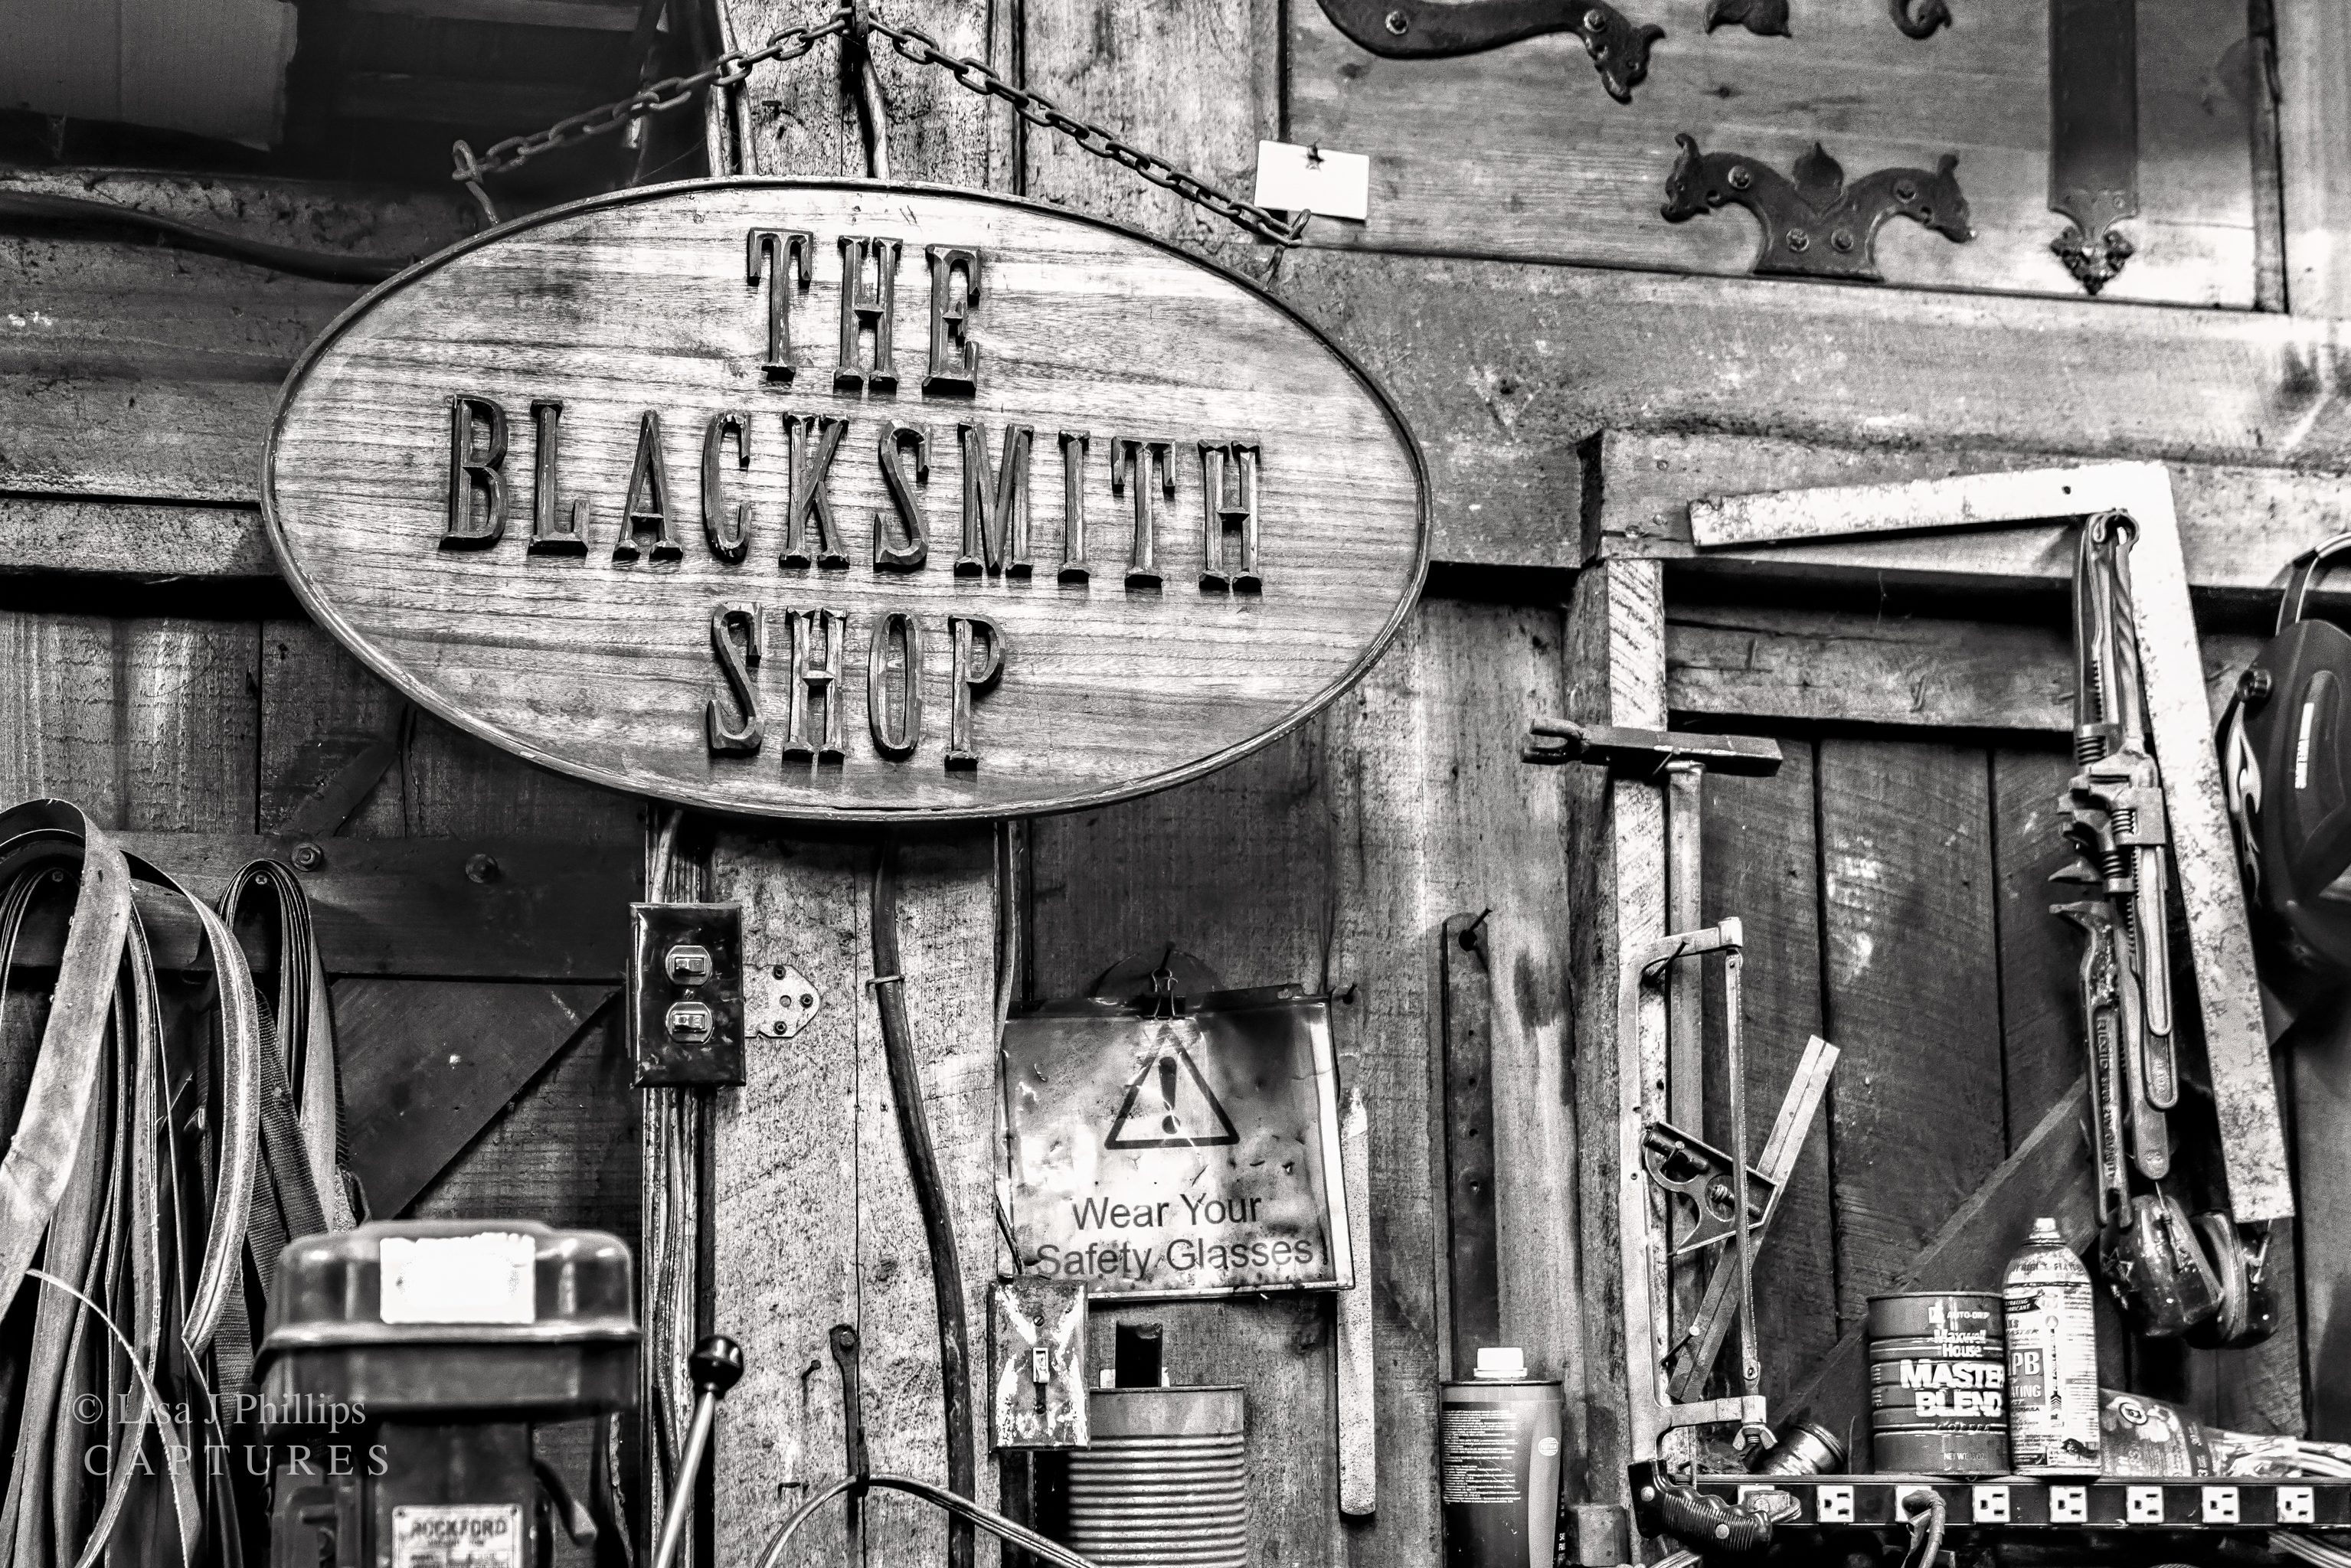 Blacksmithing Supplies